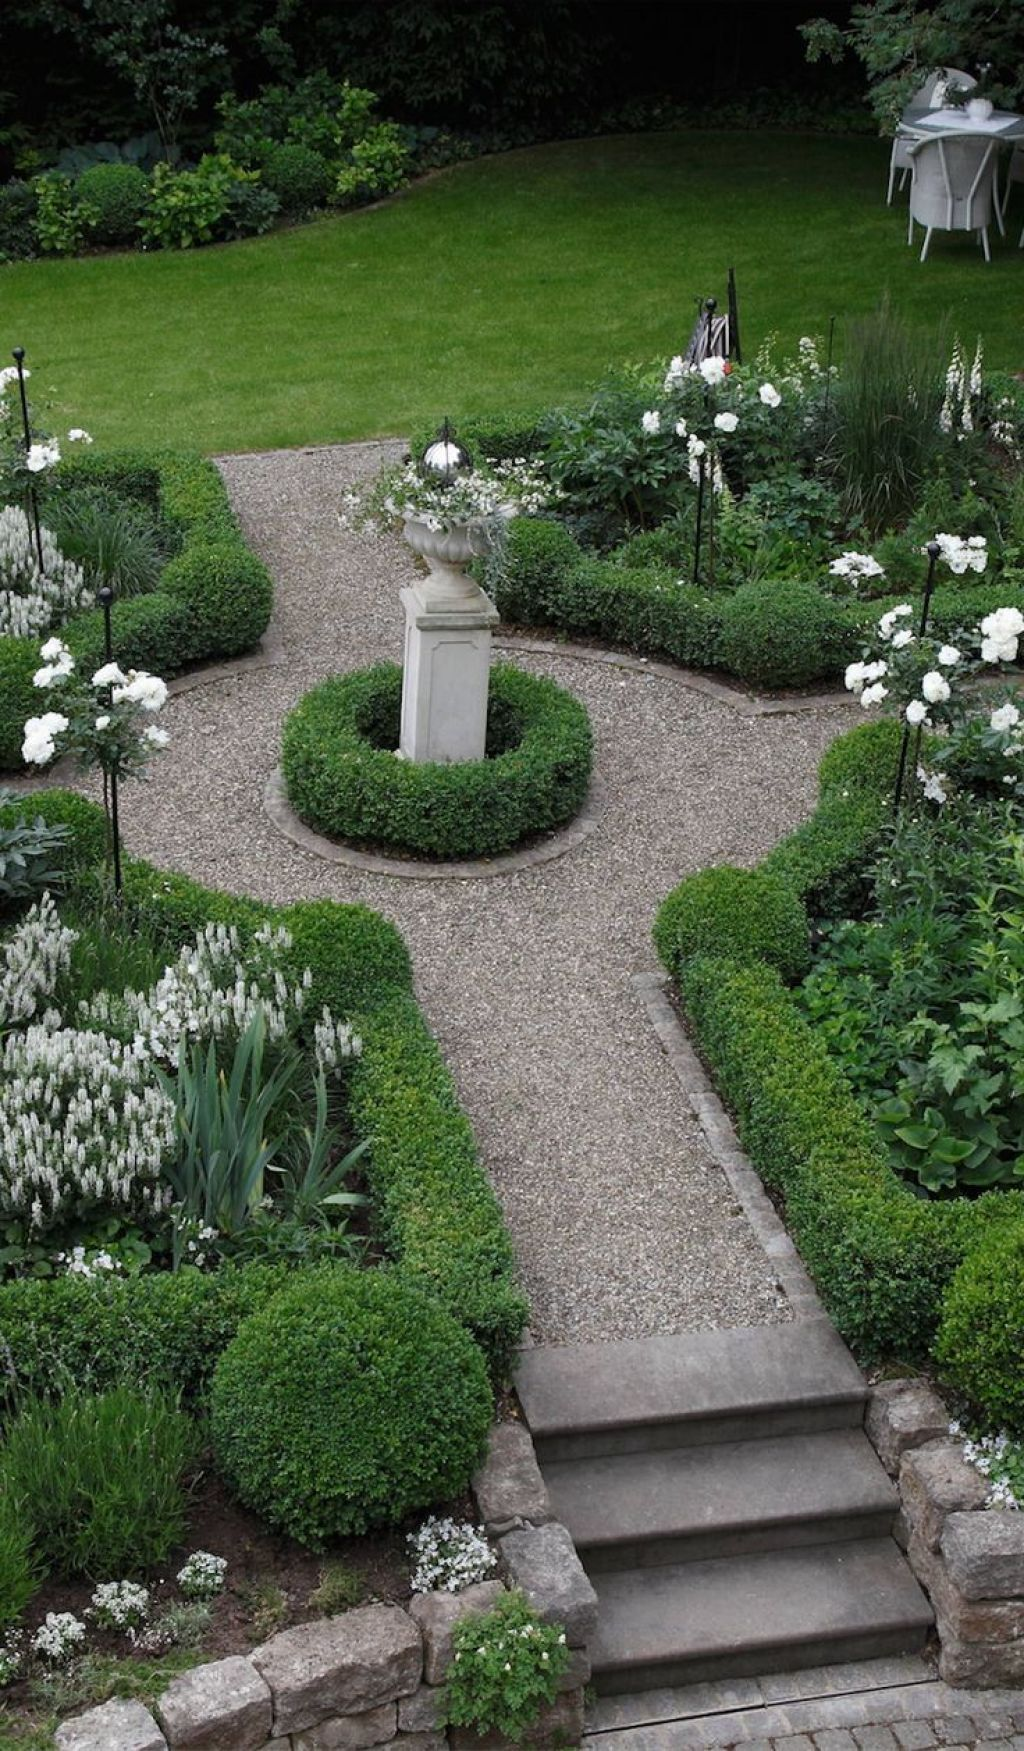 Formal Garden With Boxwood Plants And Urn | Boxwood plant, Urn and on magnolia garden, english laurel garden, english rose garden, pink and white landscape garden, lilac garden, hydrangea garden, iris garden, english garden landscape design ideas, english heather garden, carnations garden, camellia garden, flower border around vegetable garden, english lavender garden, english ivy garden, gardenia garden,